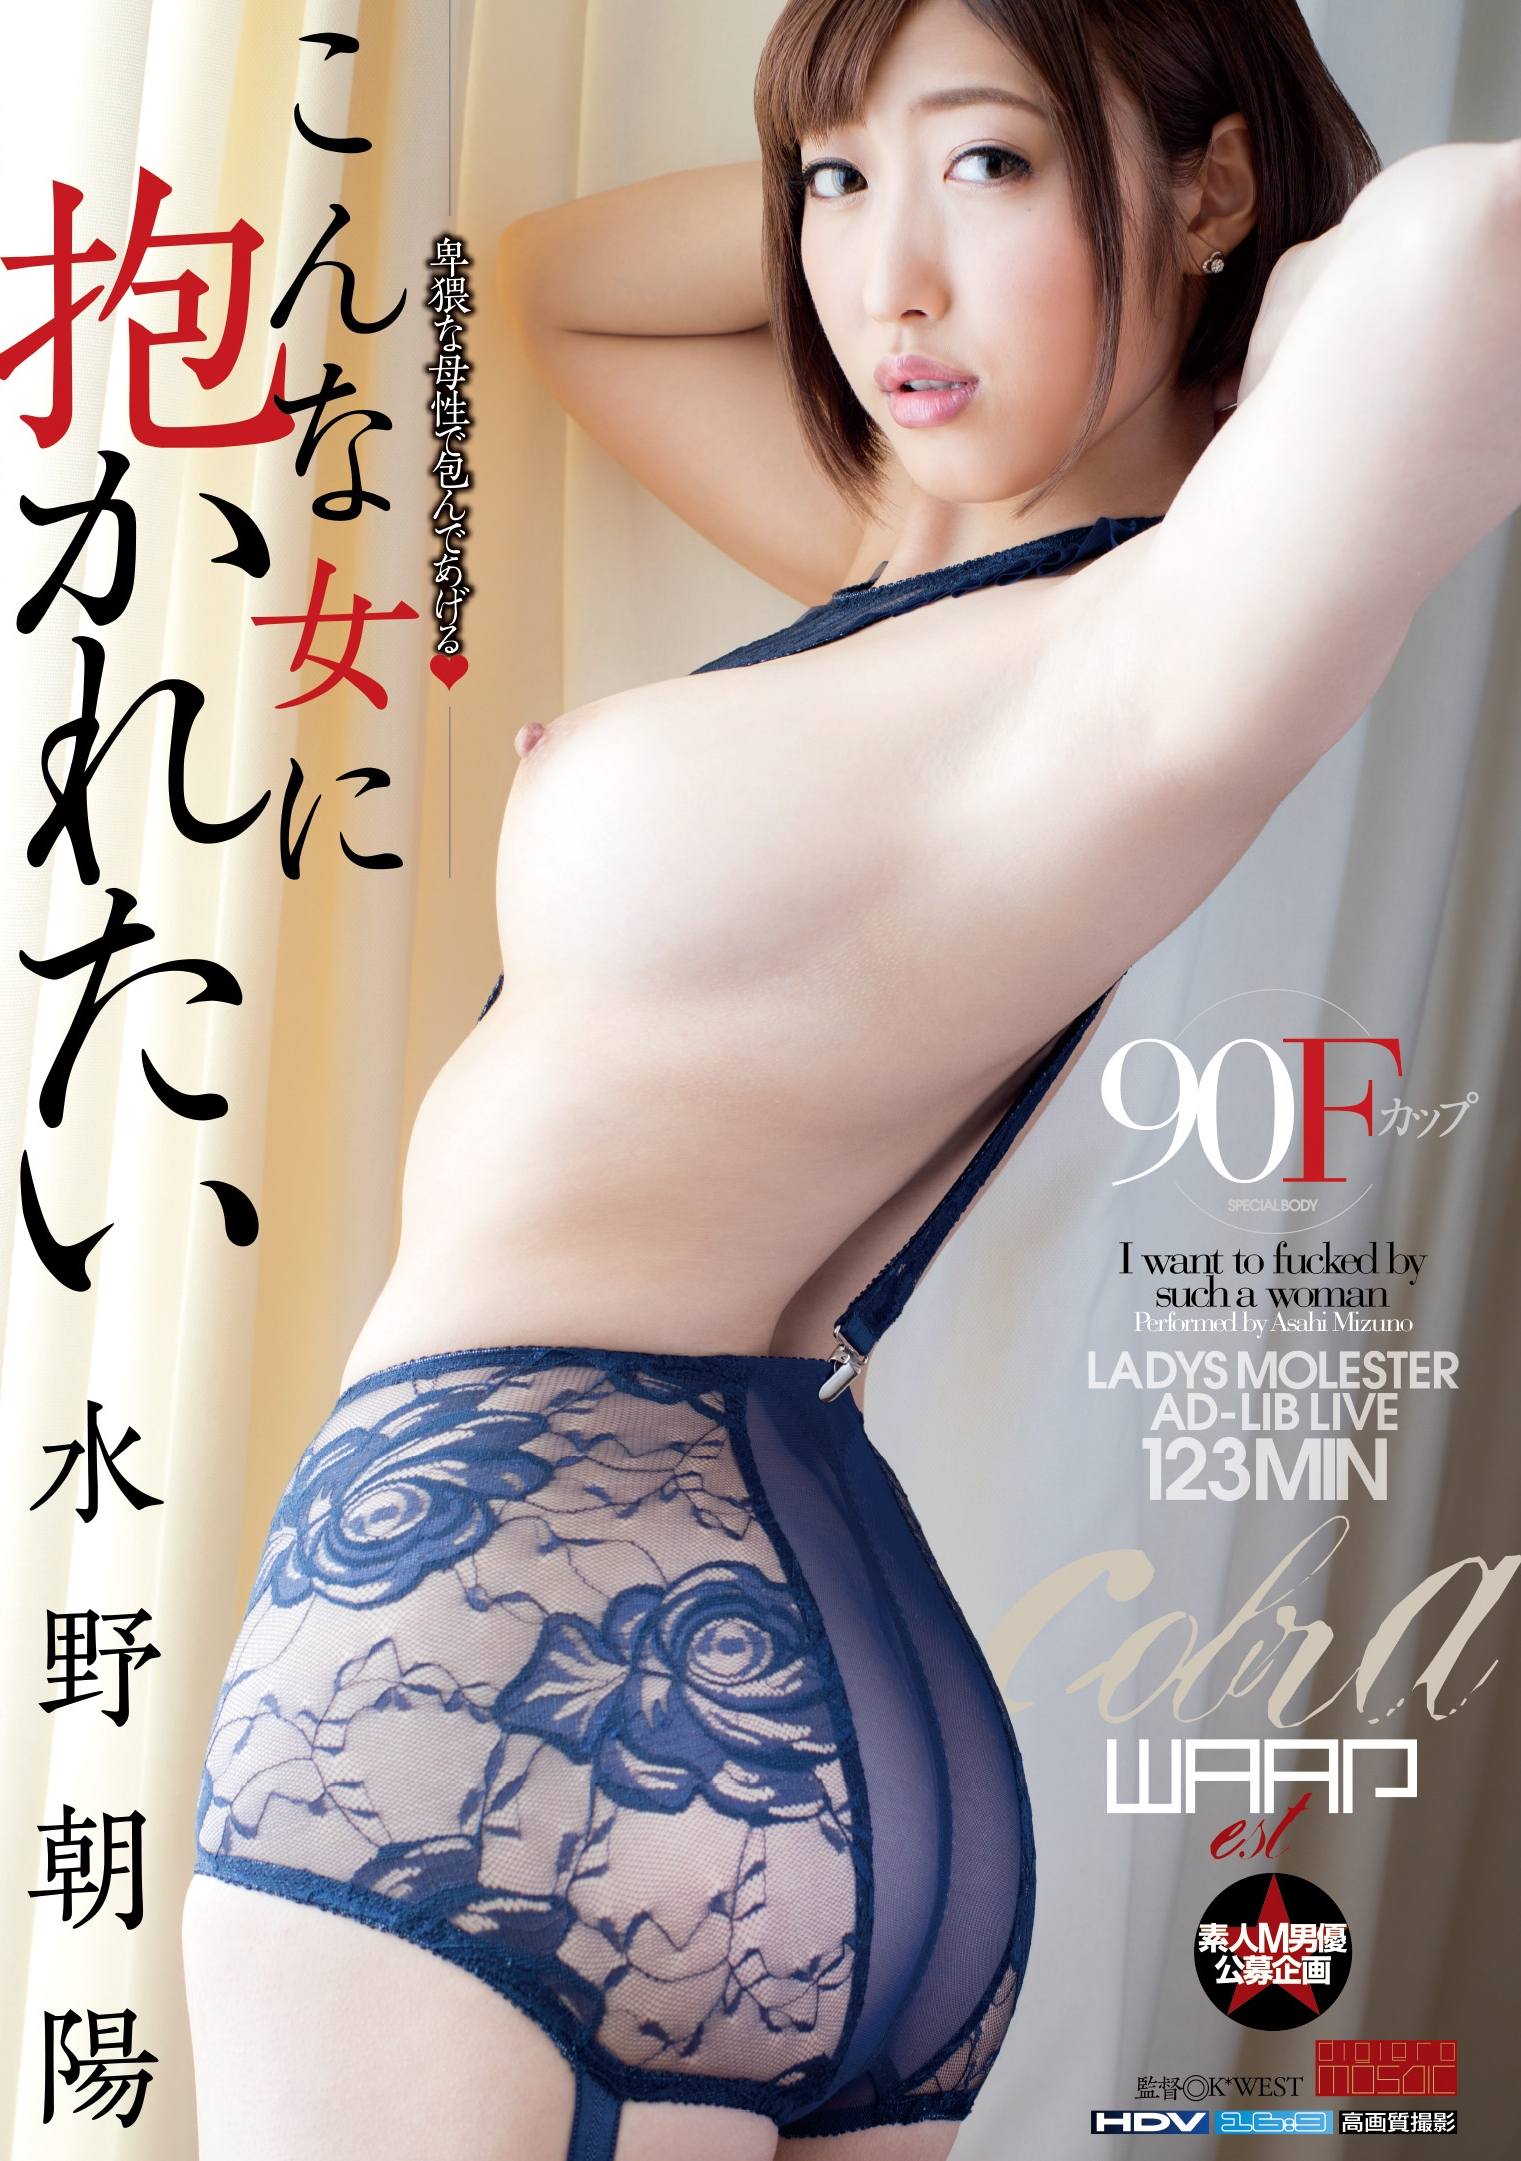 Want To Be Fucked By Such Woman, Asahi Mizuno